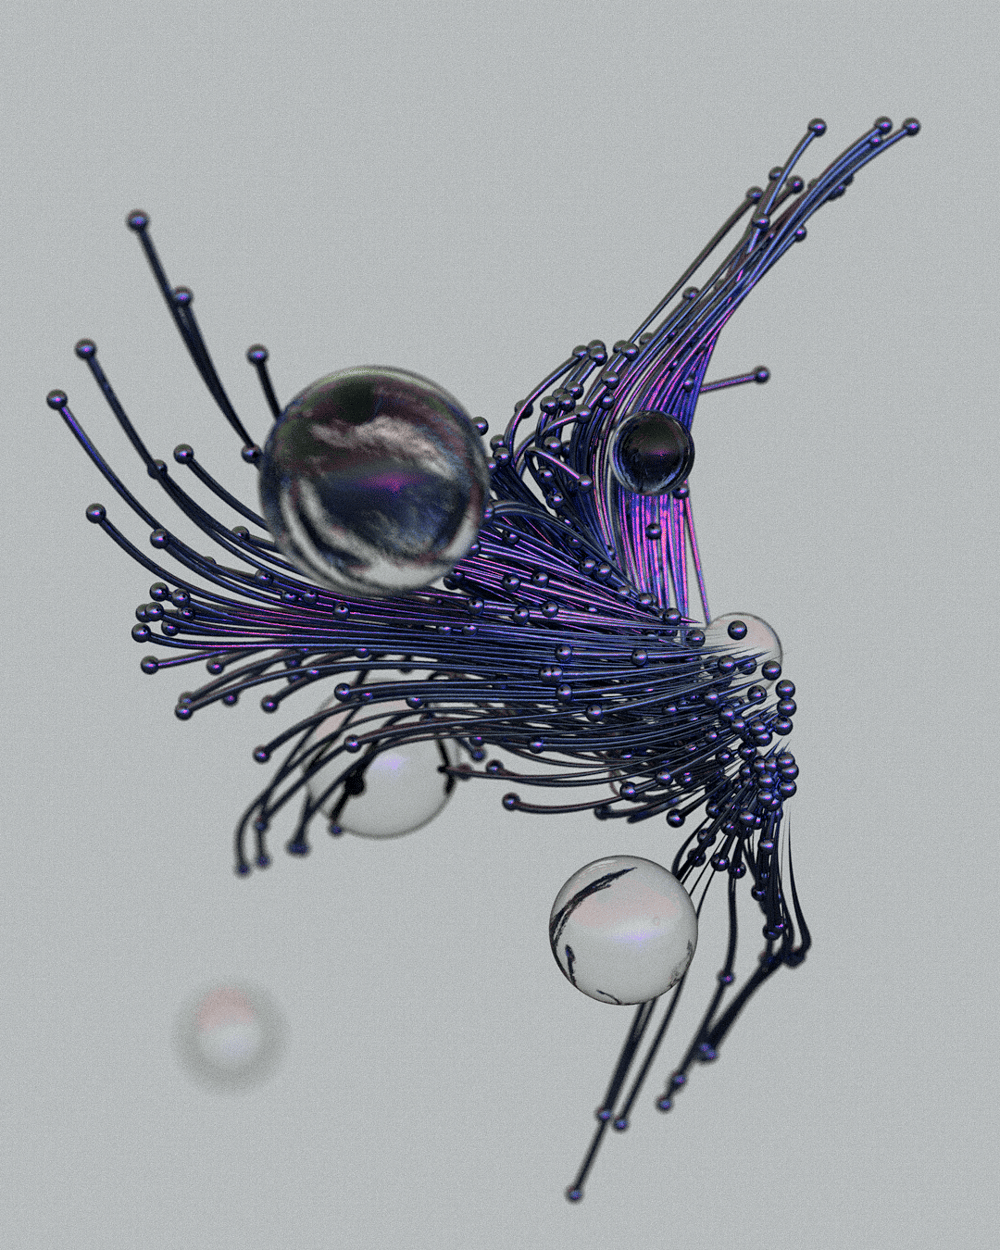 Abtsract Tendrills_Spheres - image 3 - student project